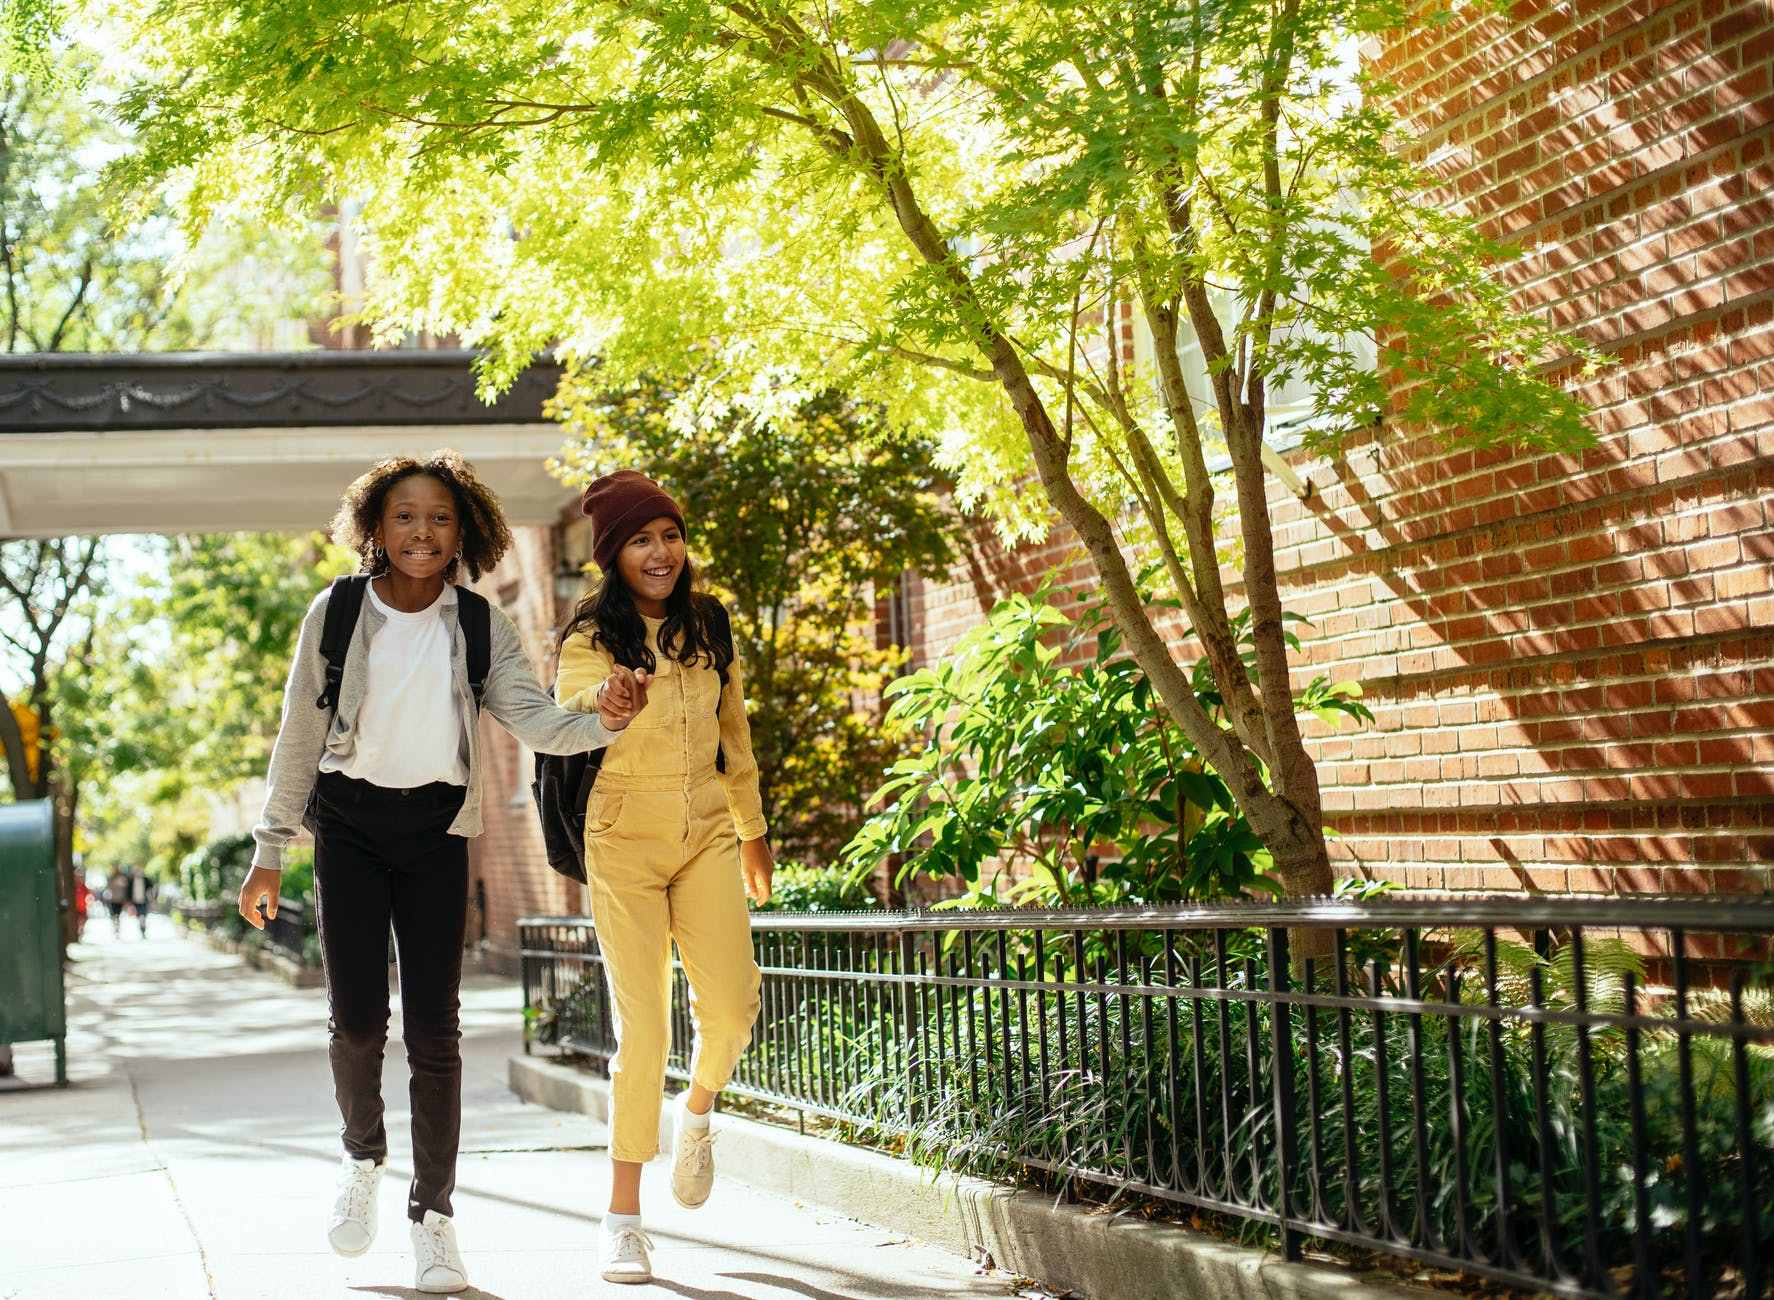 happy diverse girls smiling on street with green tree